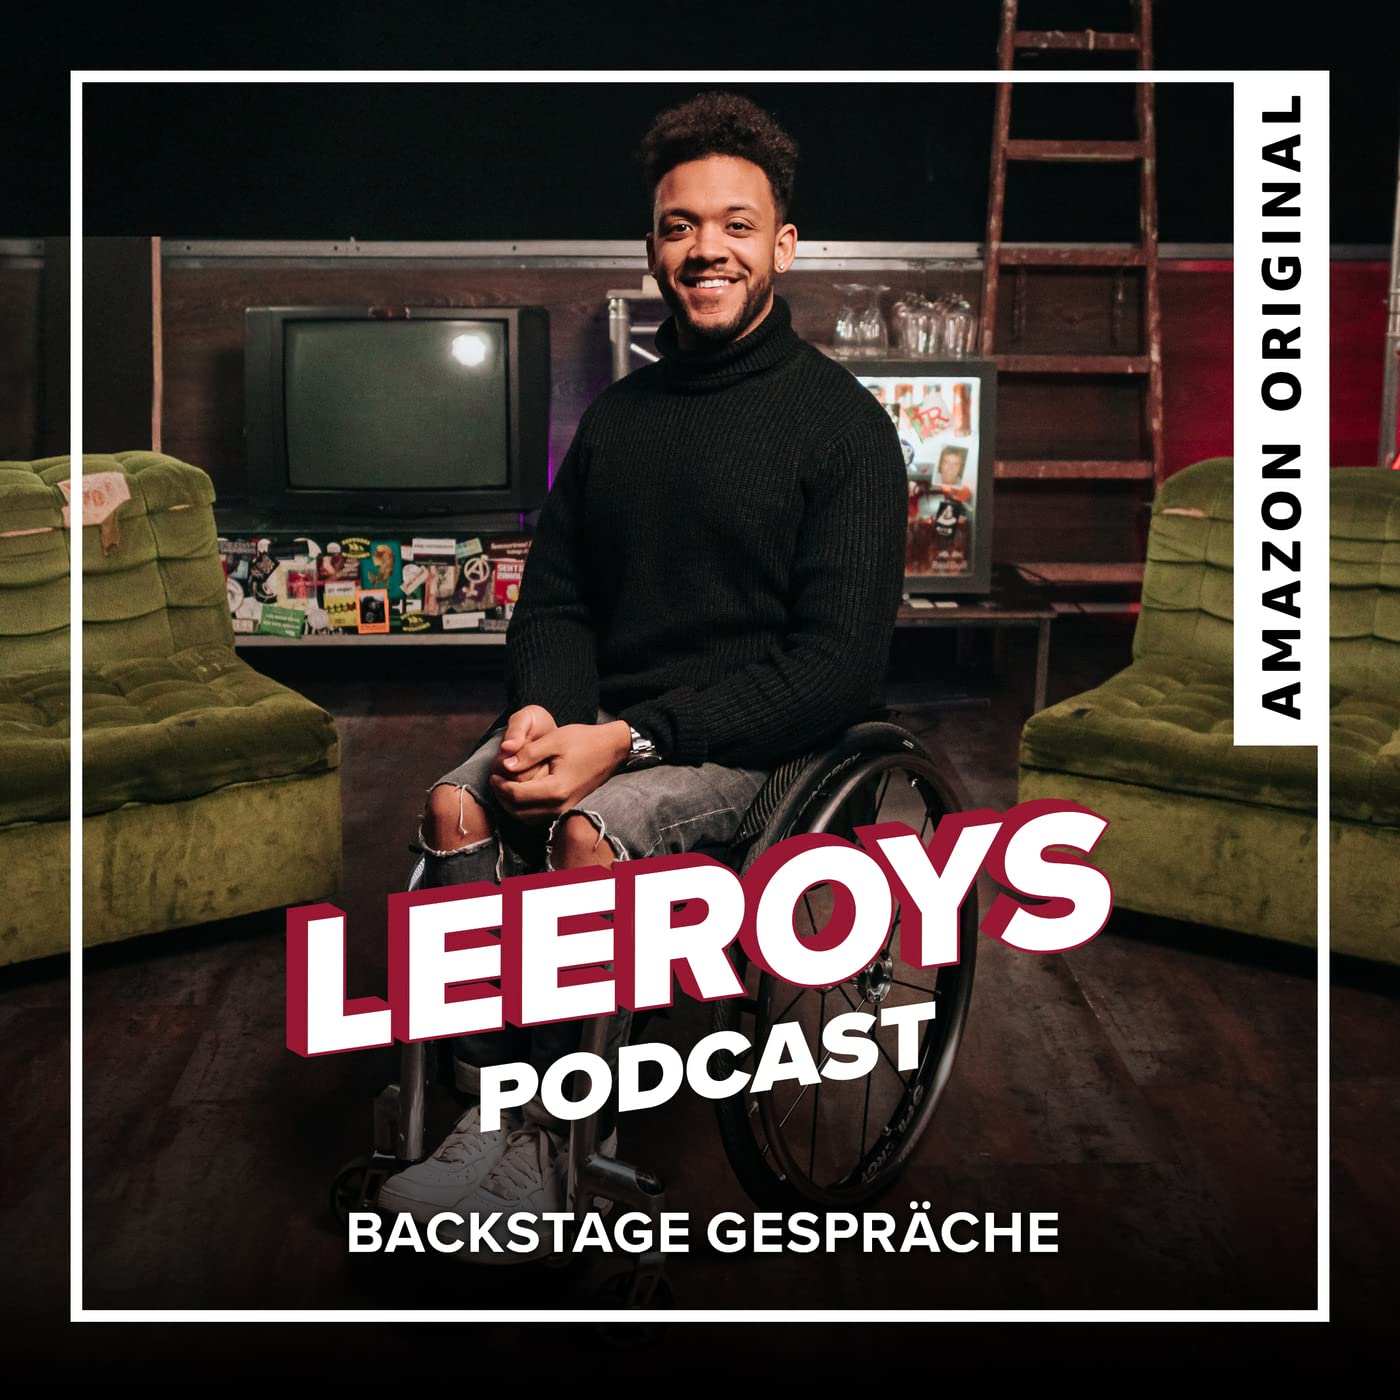 Leeroys Podcast